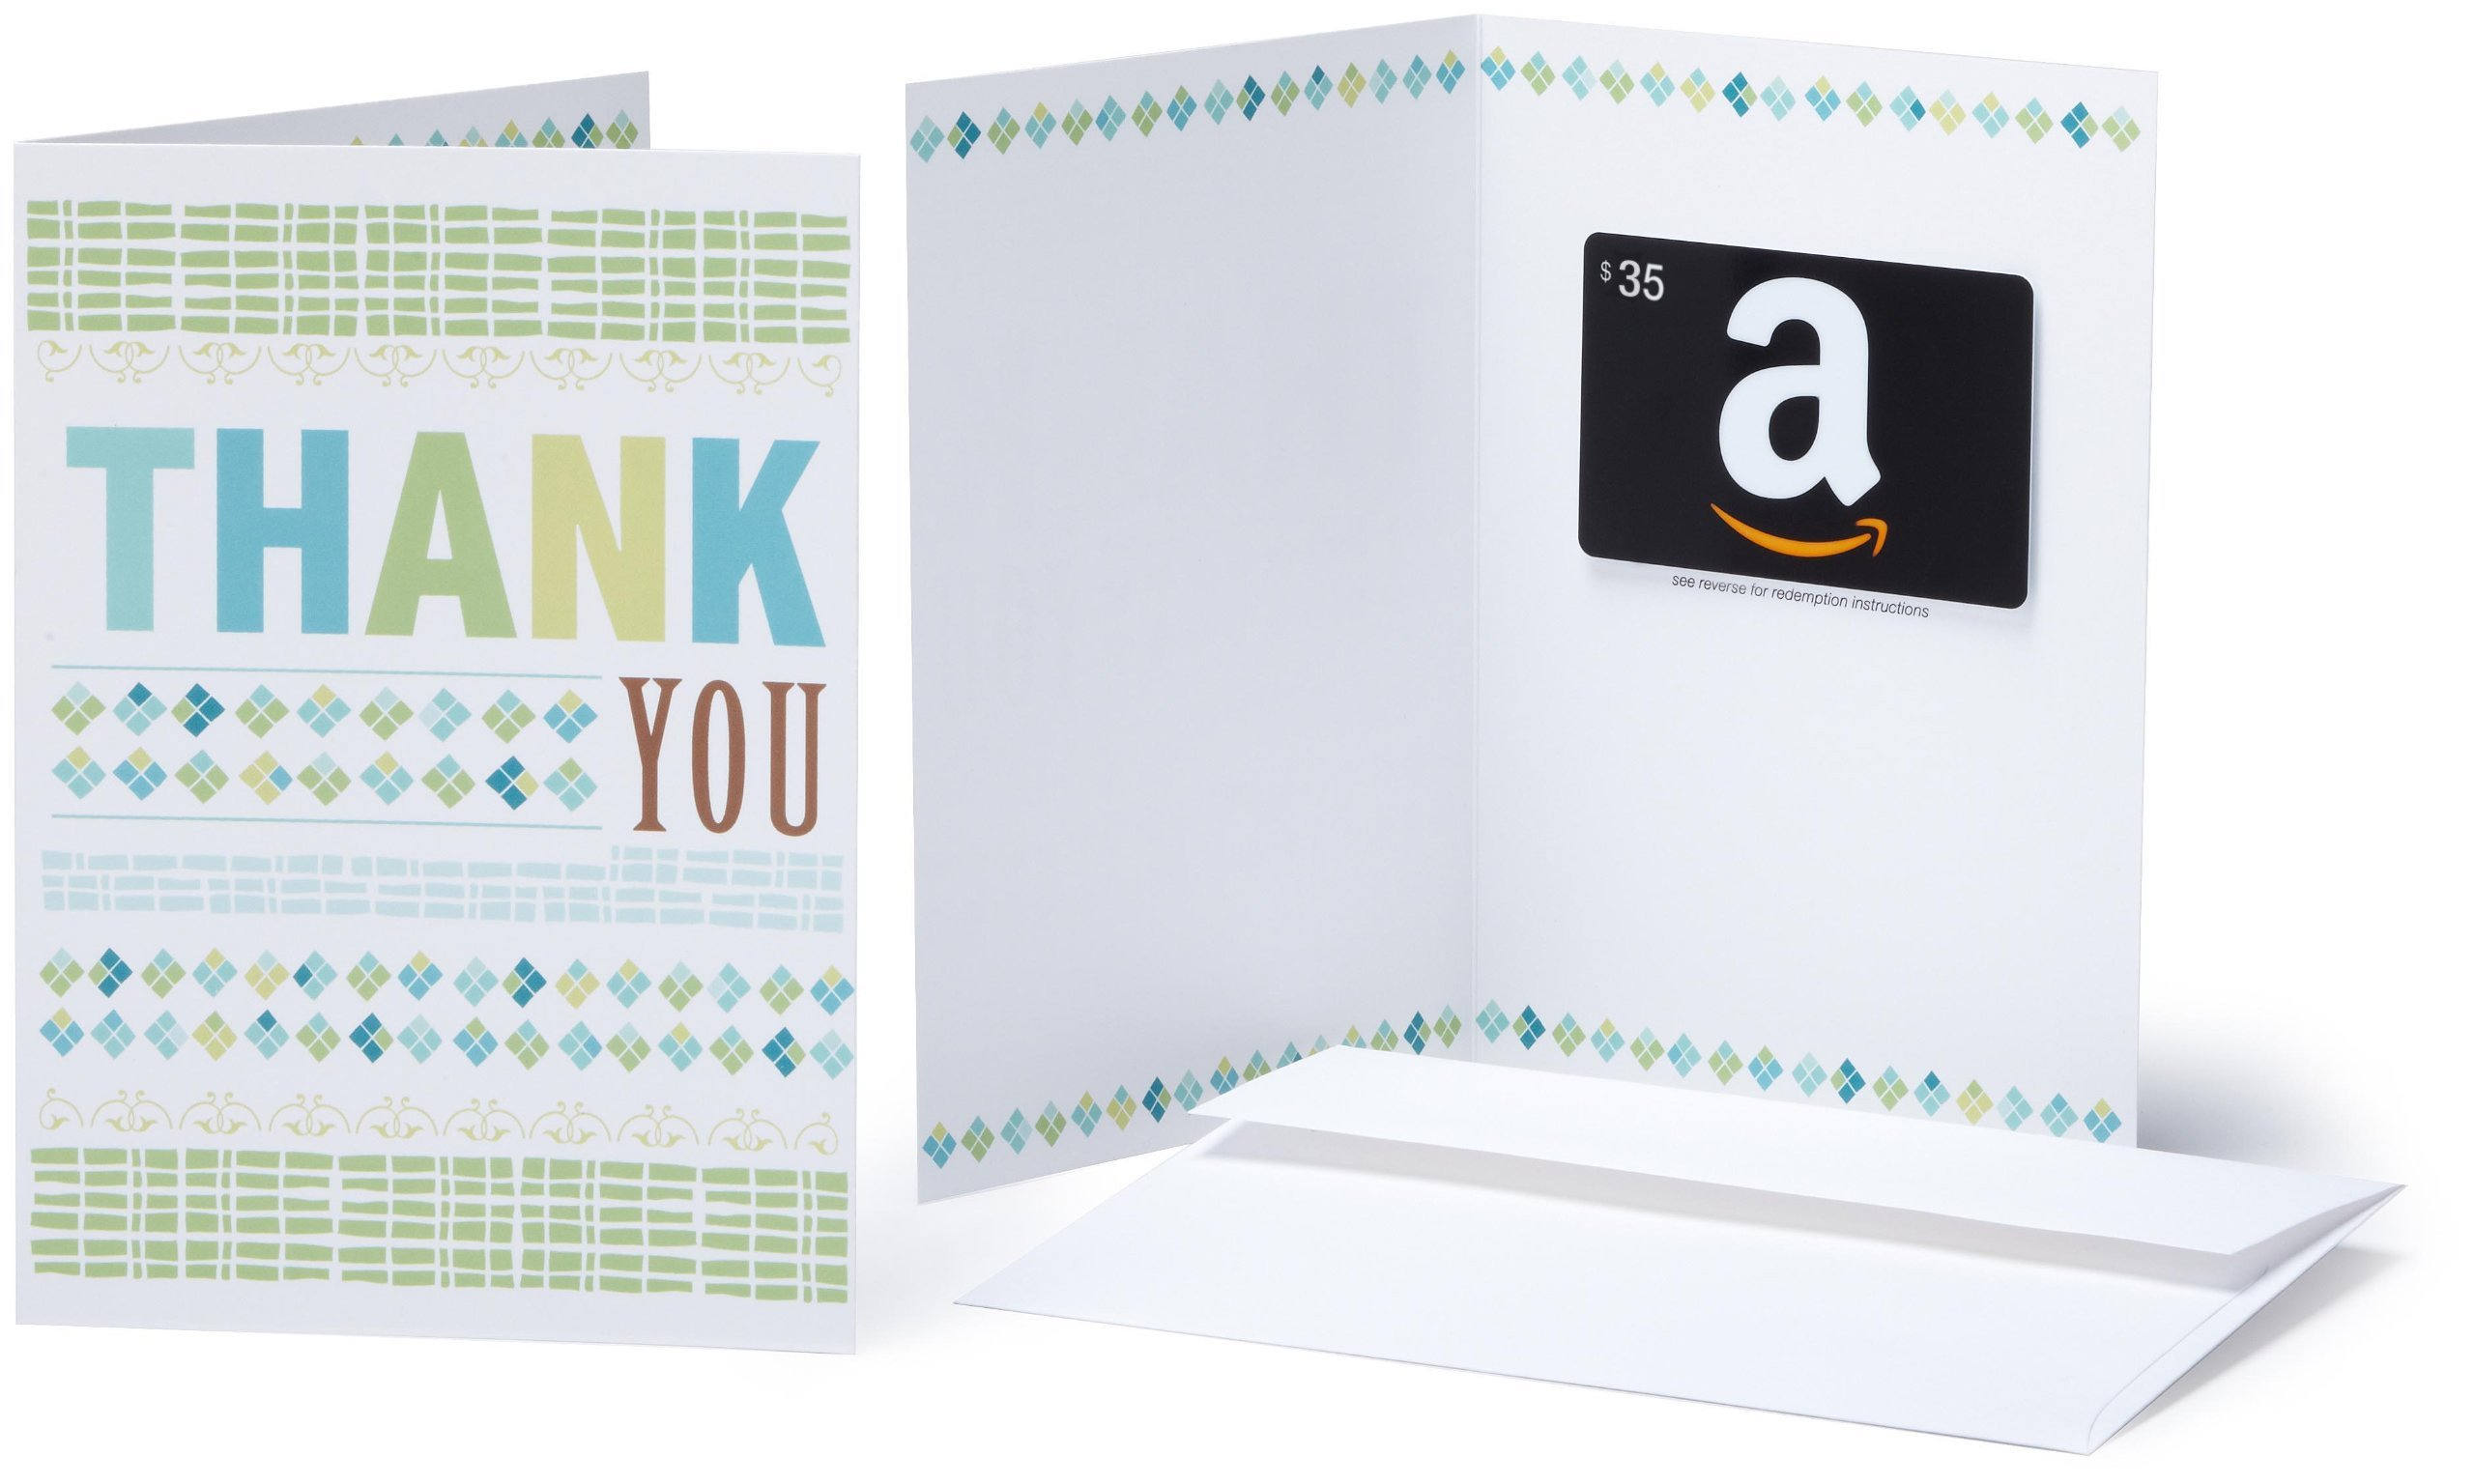 Amazon.com $35 Gift Card in a Greeting Card (Thank You Design)